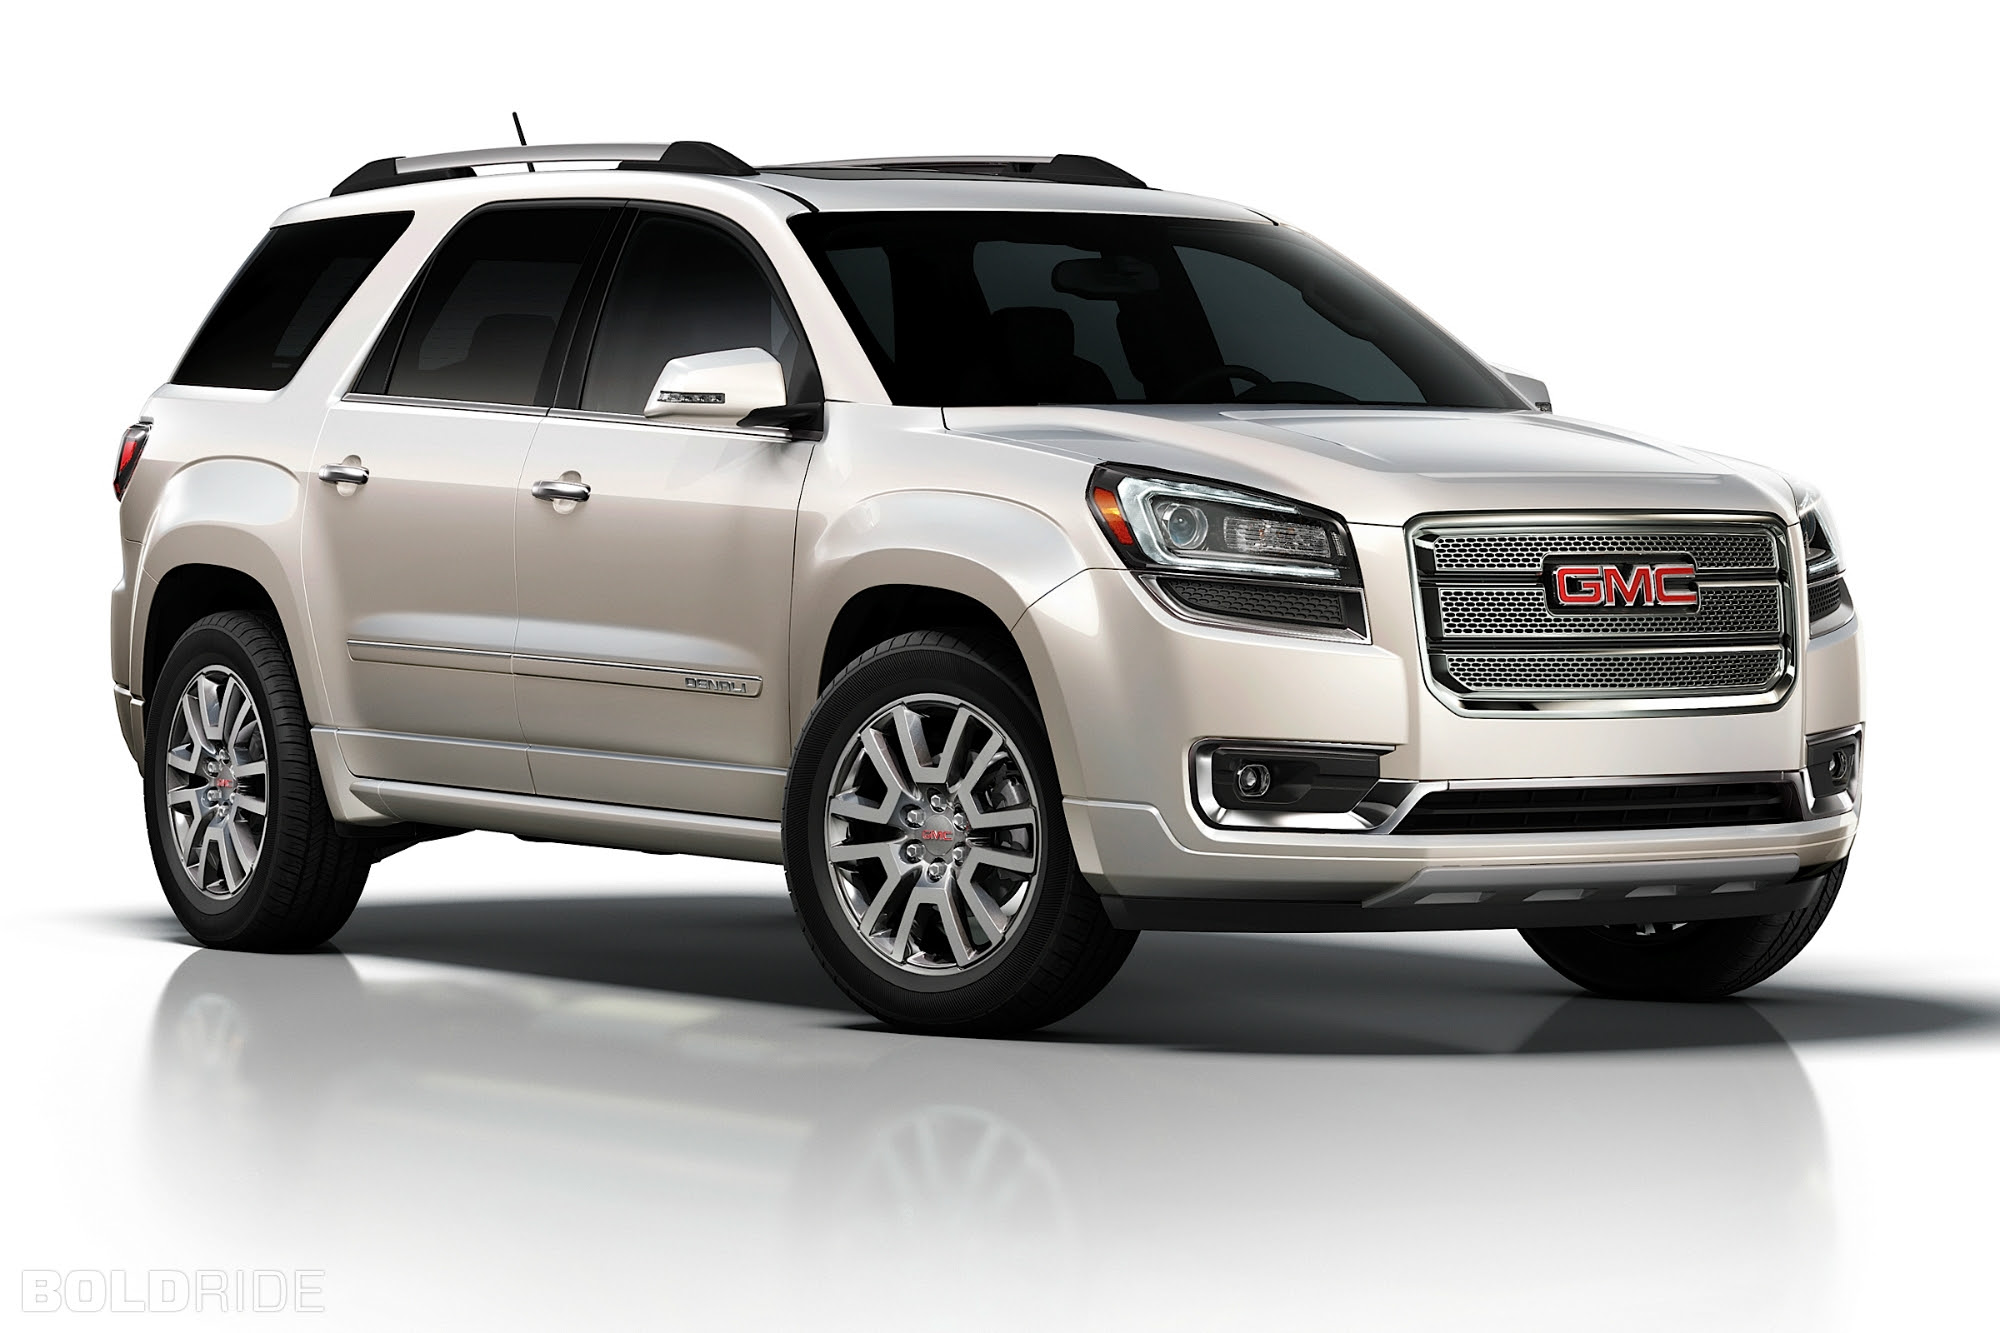 GMC ACADIA - Review and photos